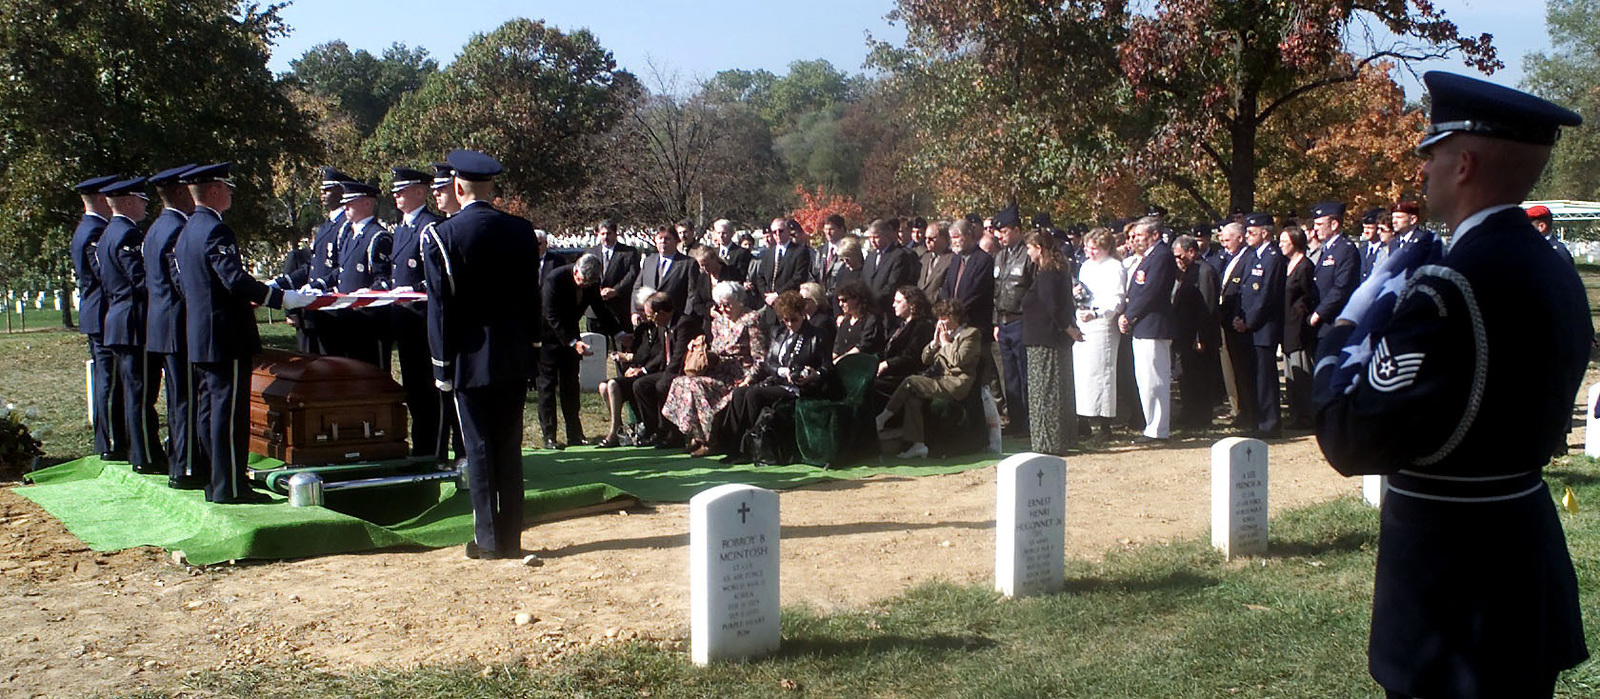 US Air Force members, family and friends gather for a full honor funeral for US Air Force Second Lieutenant Richard Vandegeer at Arlington National Cemetery on October 27, 2000